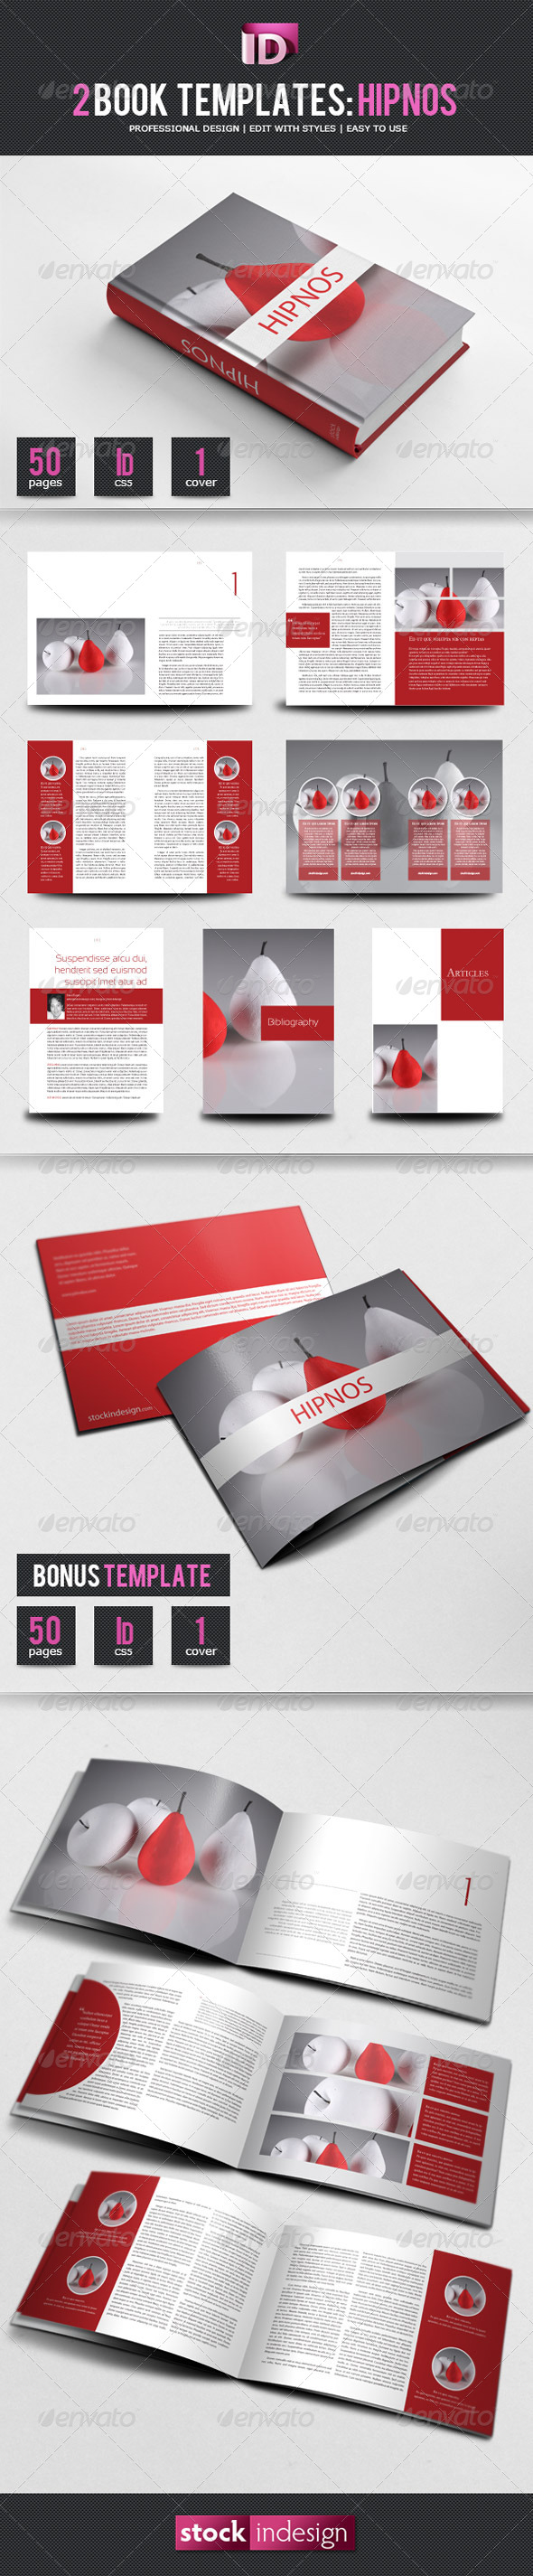 Book Template: Hipnos - Miscellaneous Print Templates